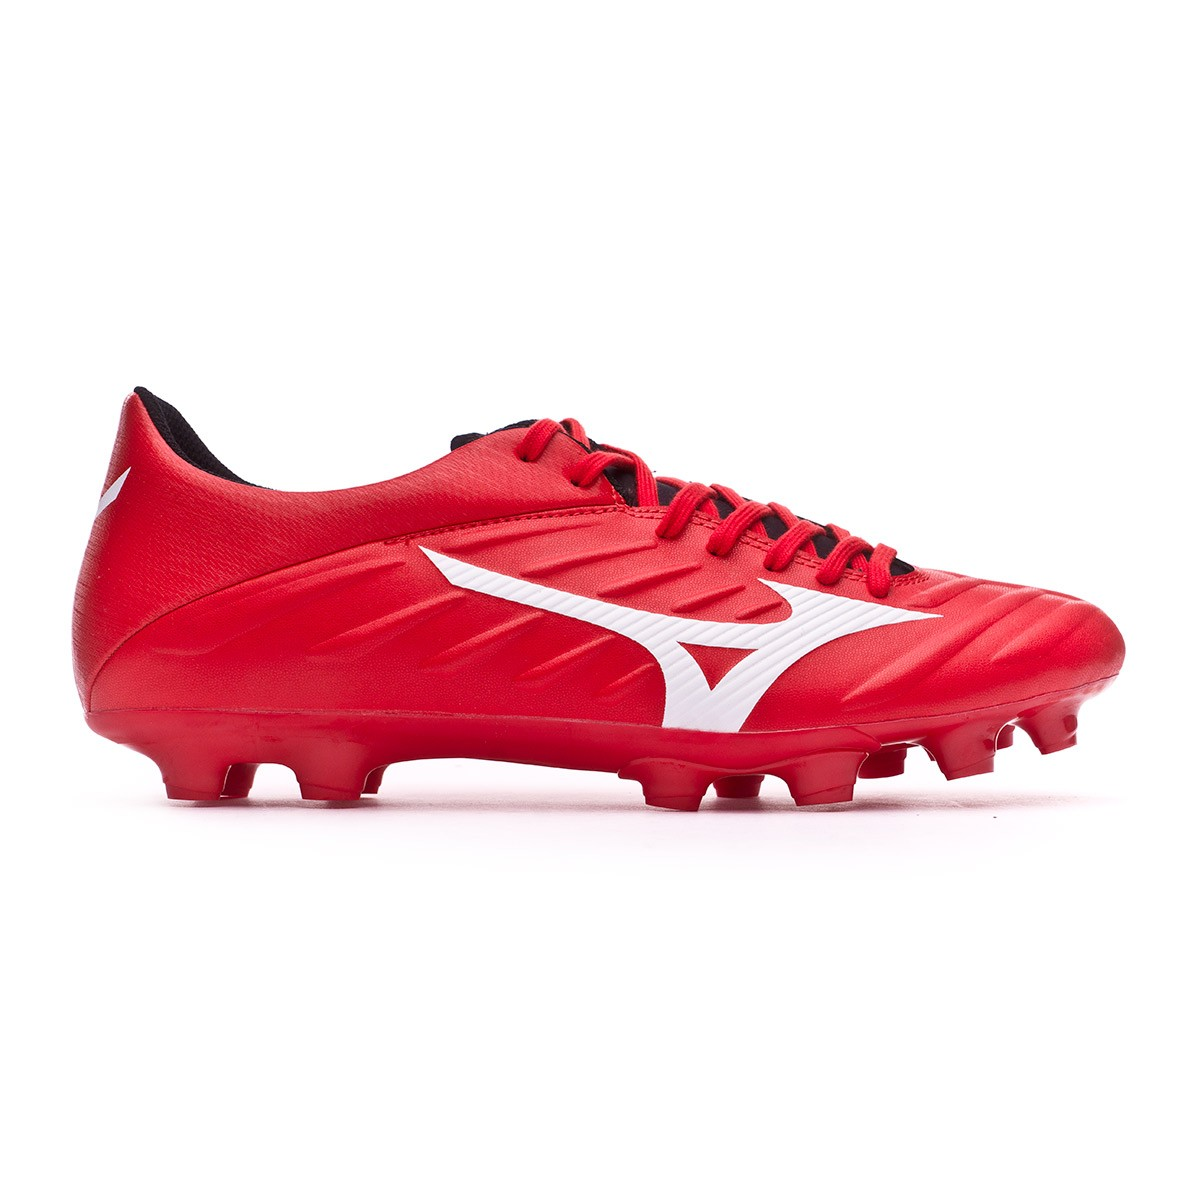 0af84bf94 Football Boots Mizuno Rebula 2 V3 High risk red-White-Black - Football  store Fútbol Emotion